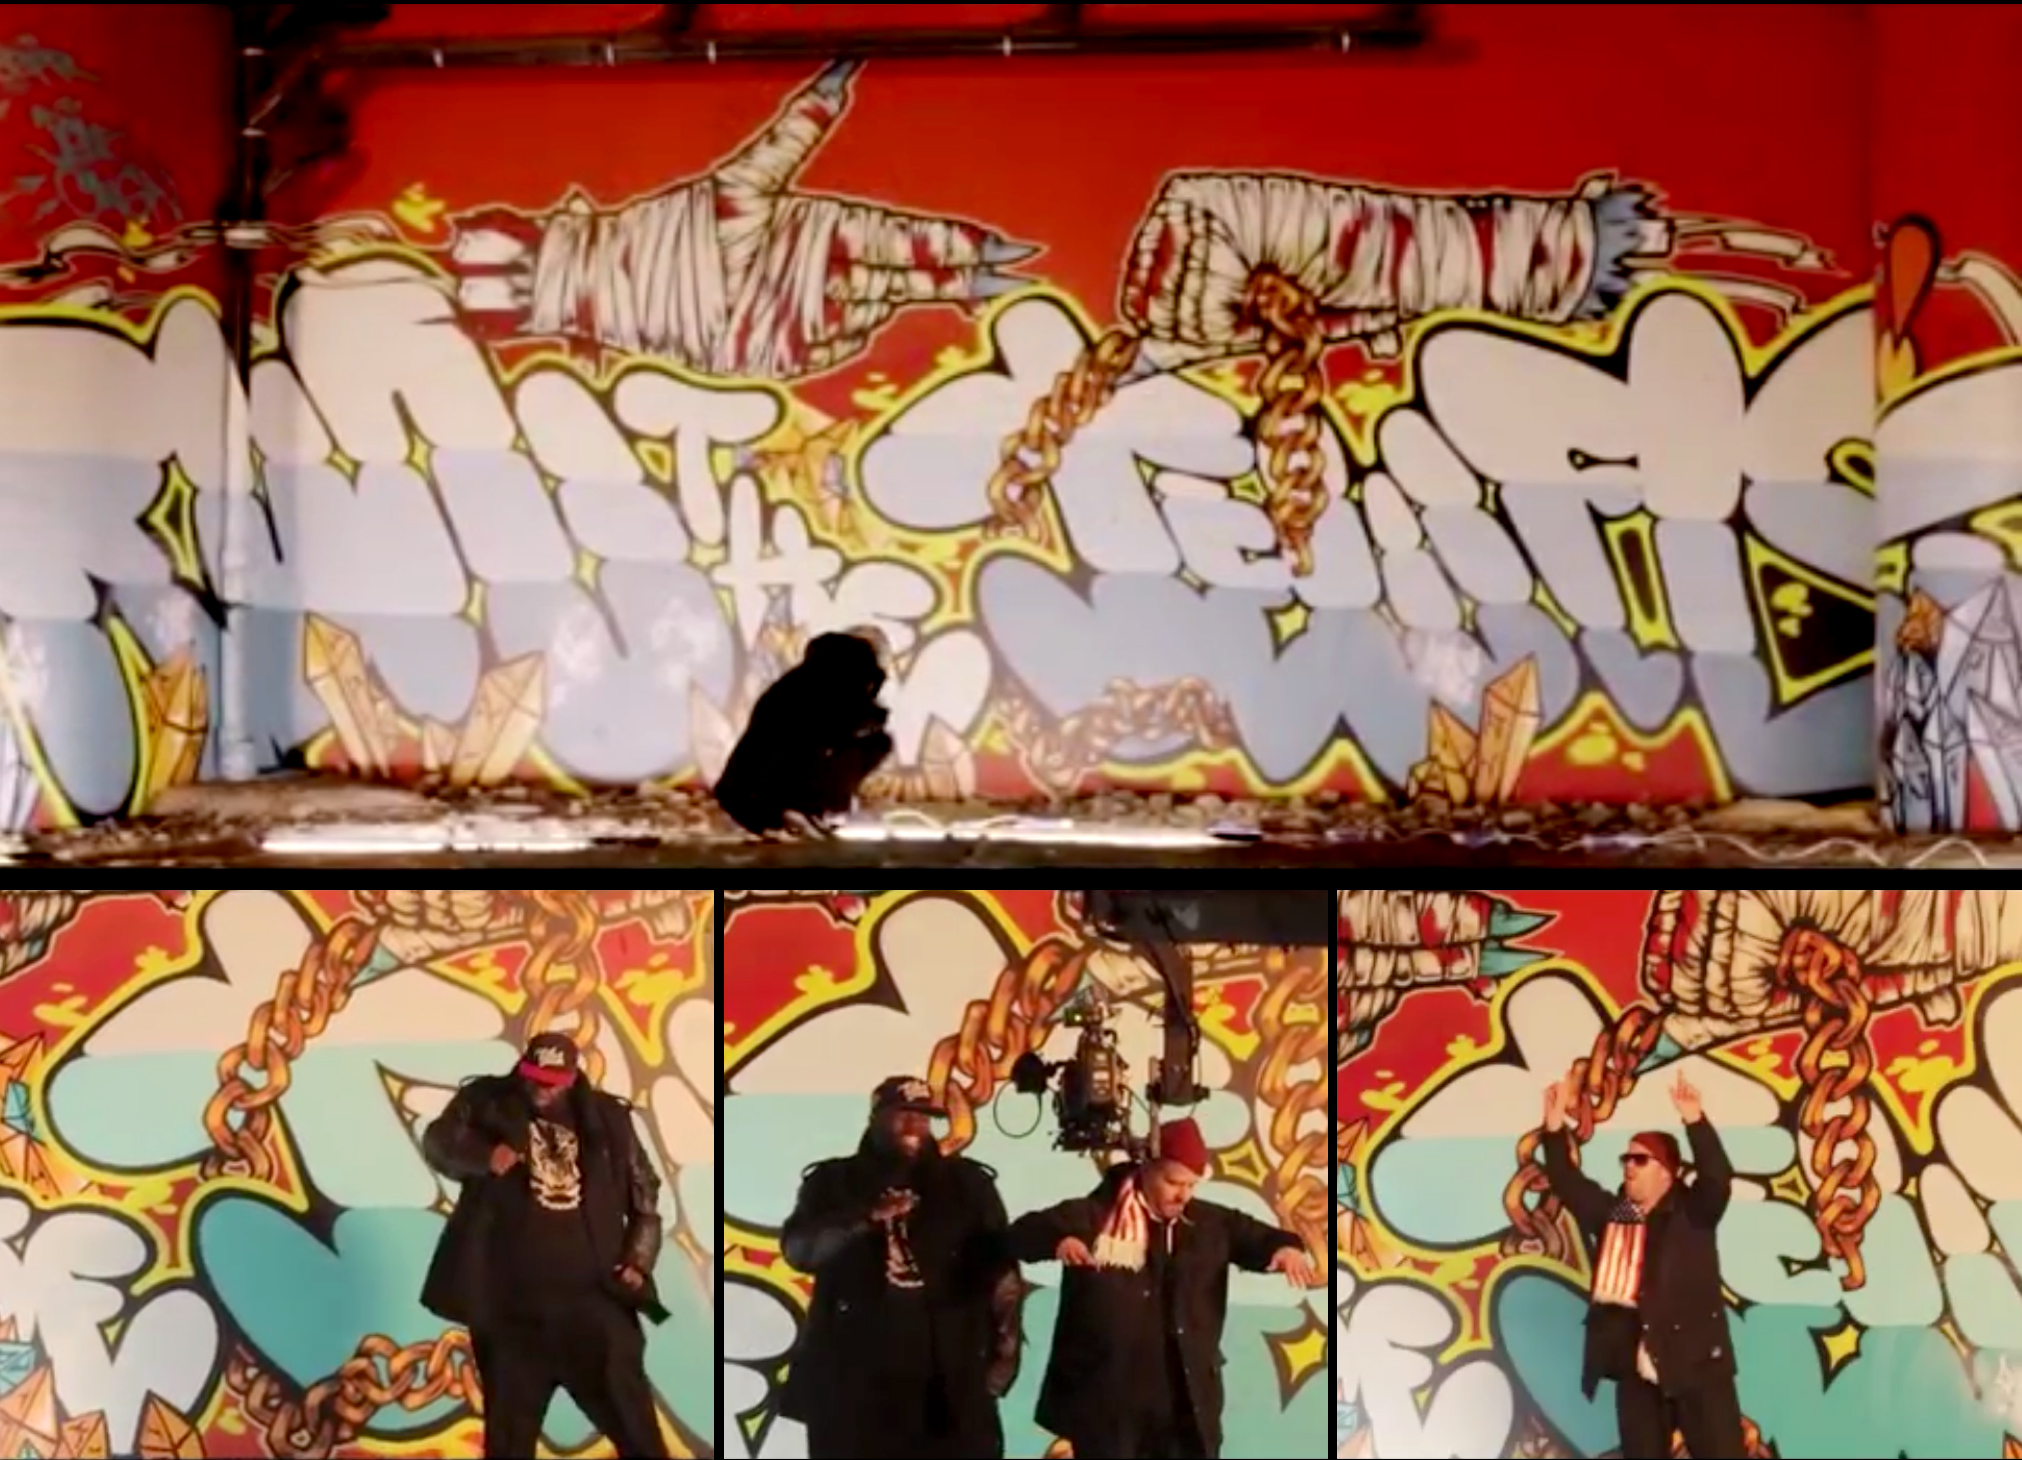 Piece for the Run The Jewels 'Lie, Cheat, Steal' music video. London '14. With Jon5, Onga